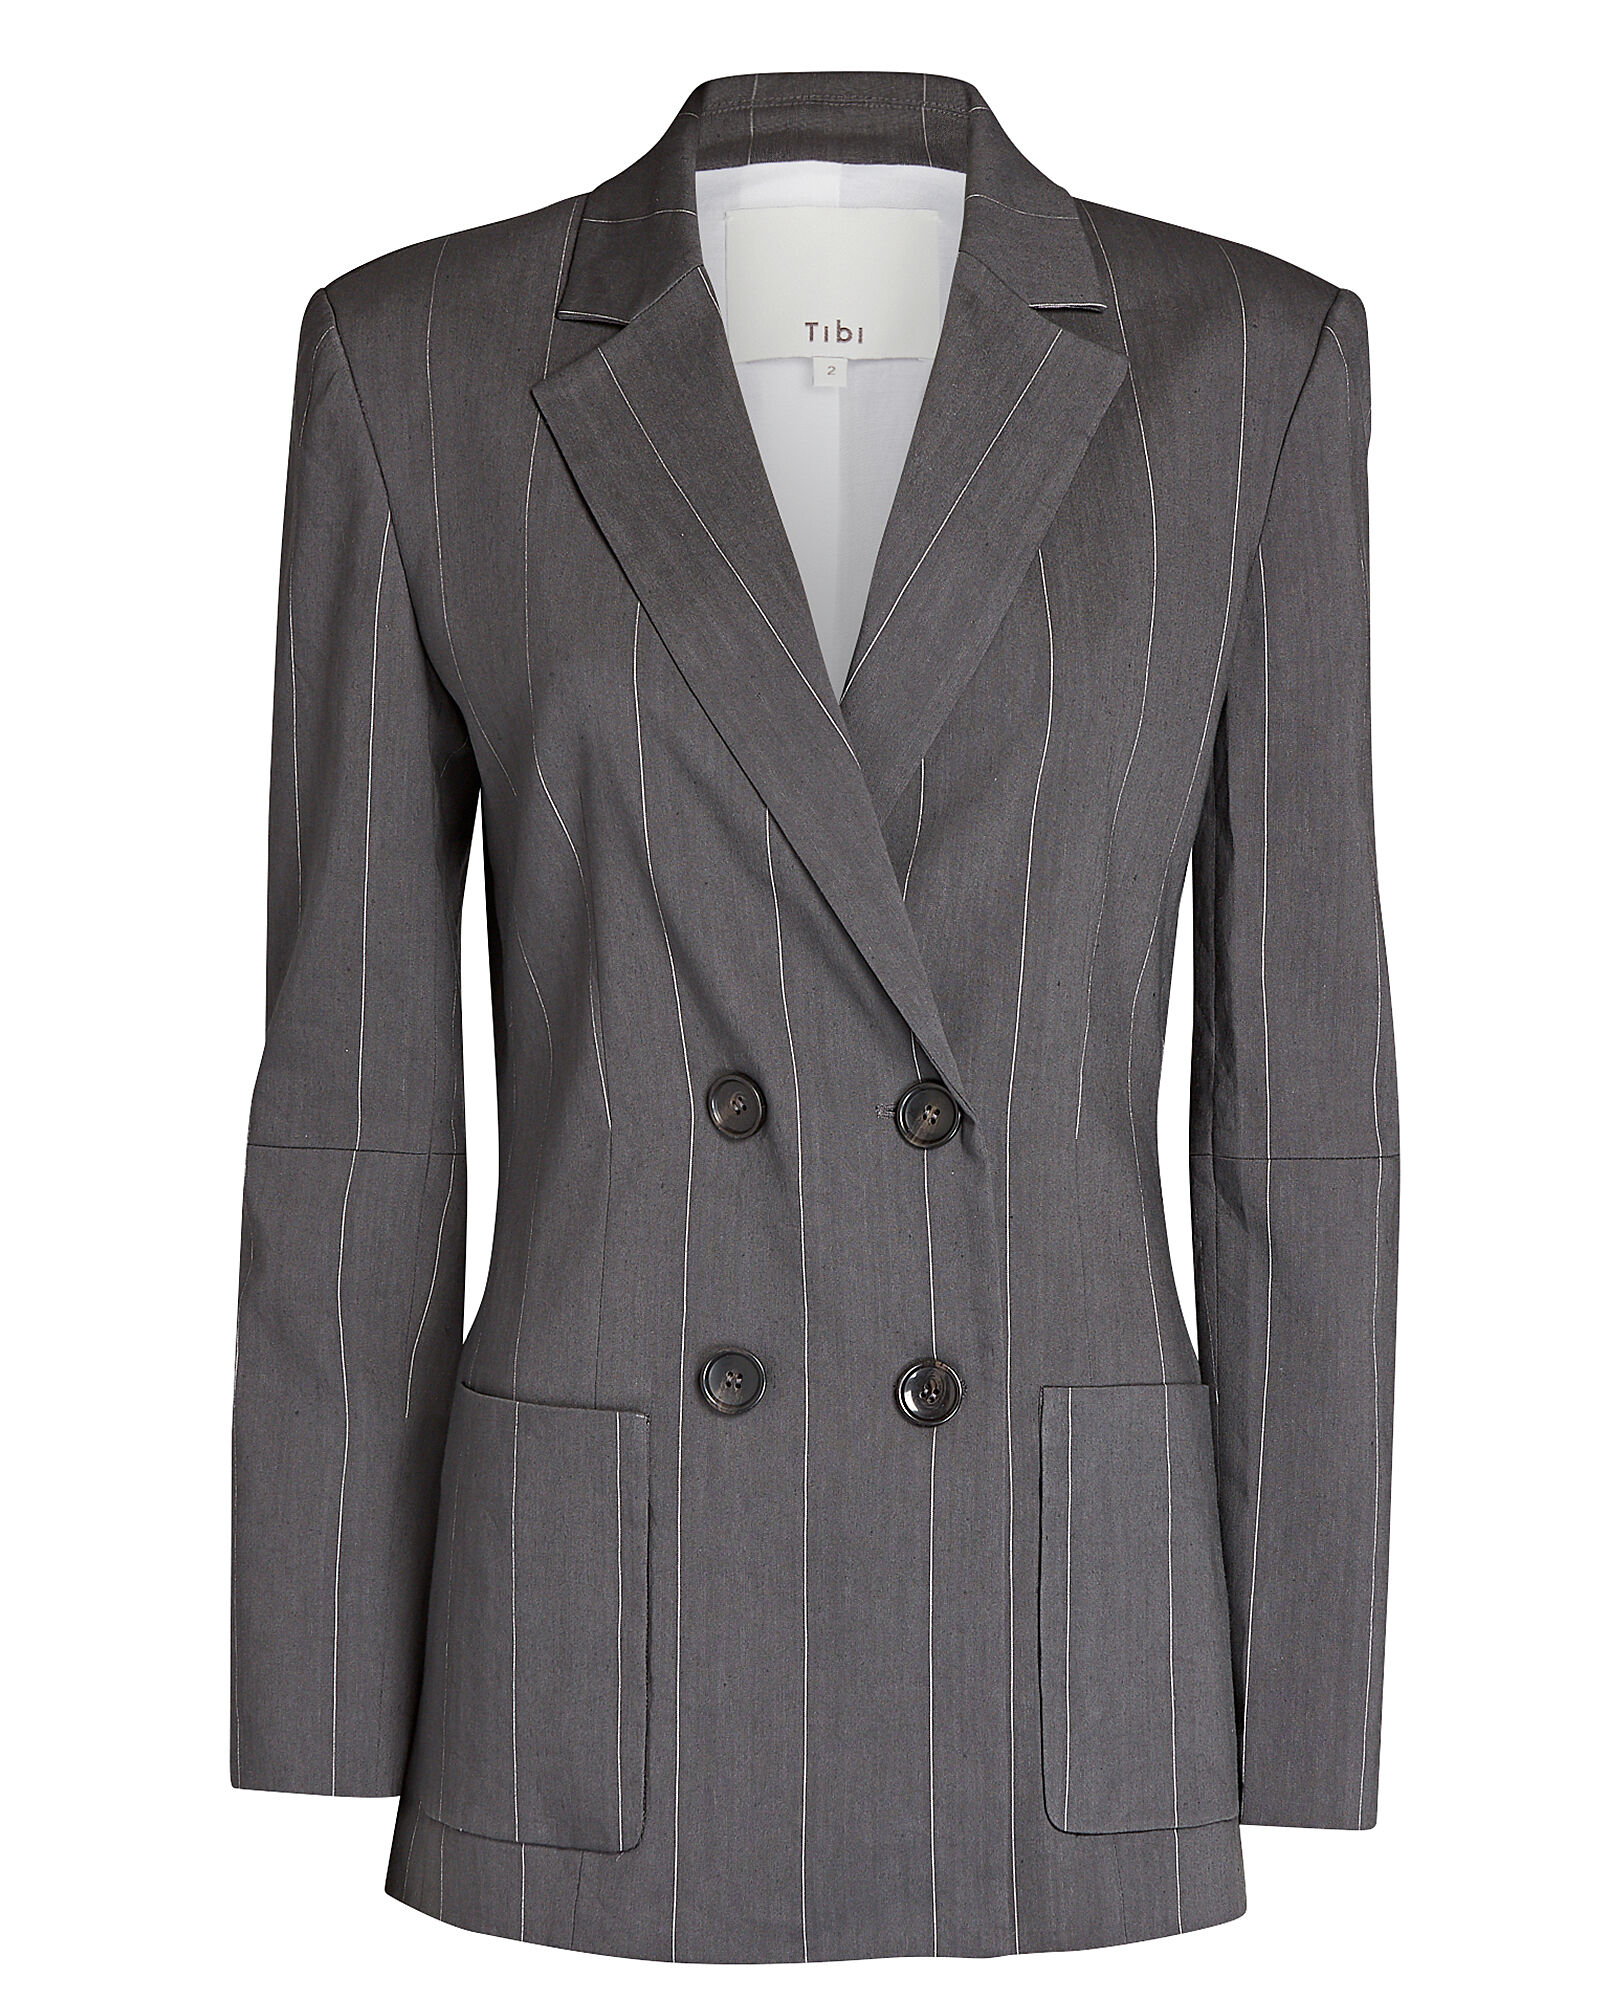 Isselin Striped Double-Breasted Blazer, MULTI, hi-res